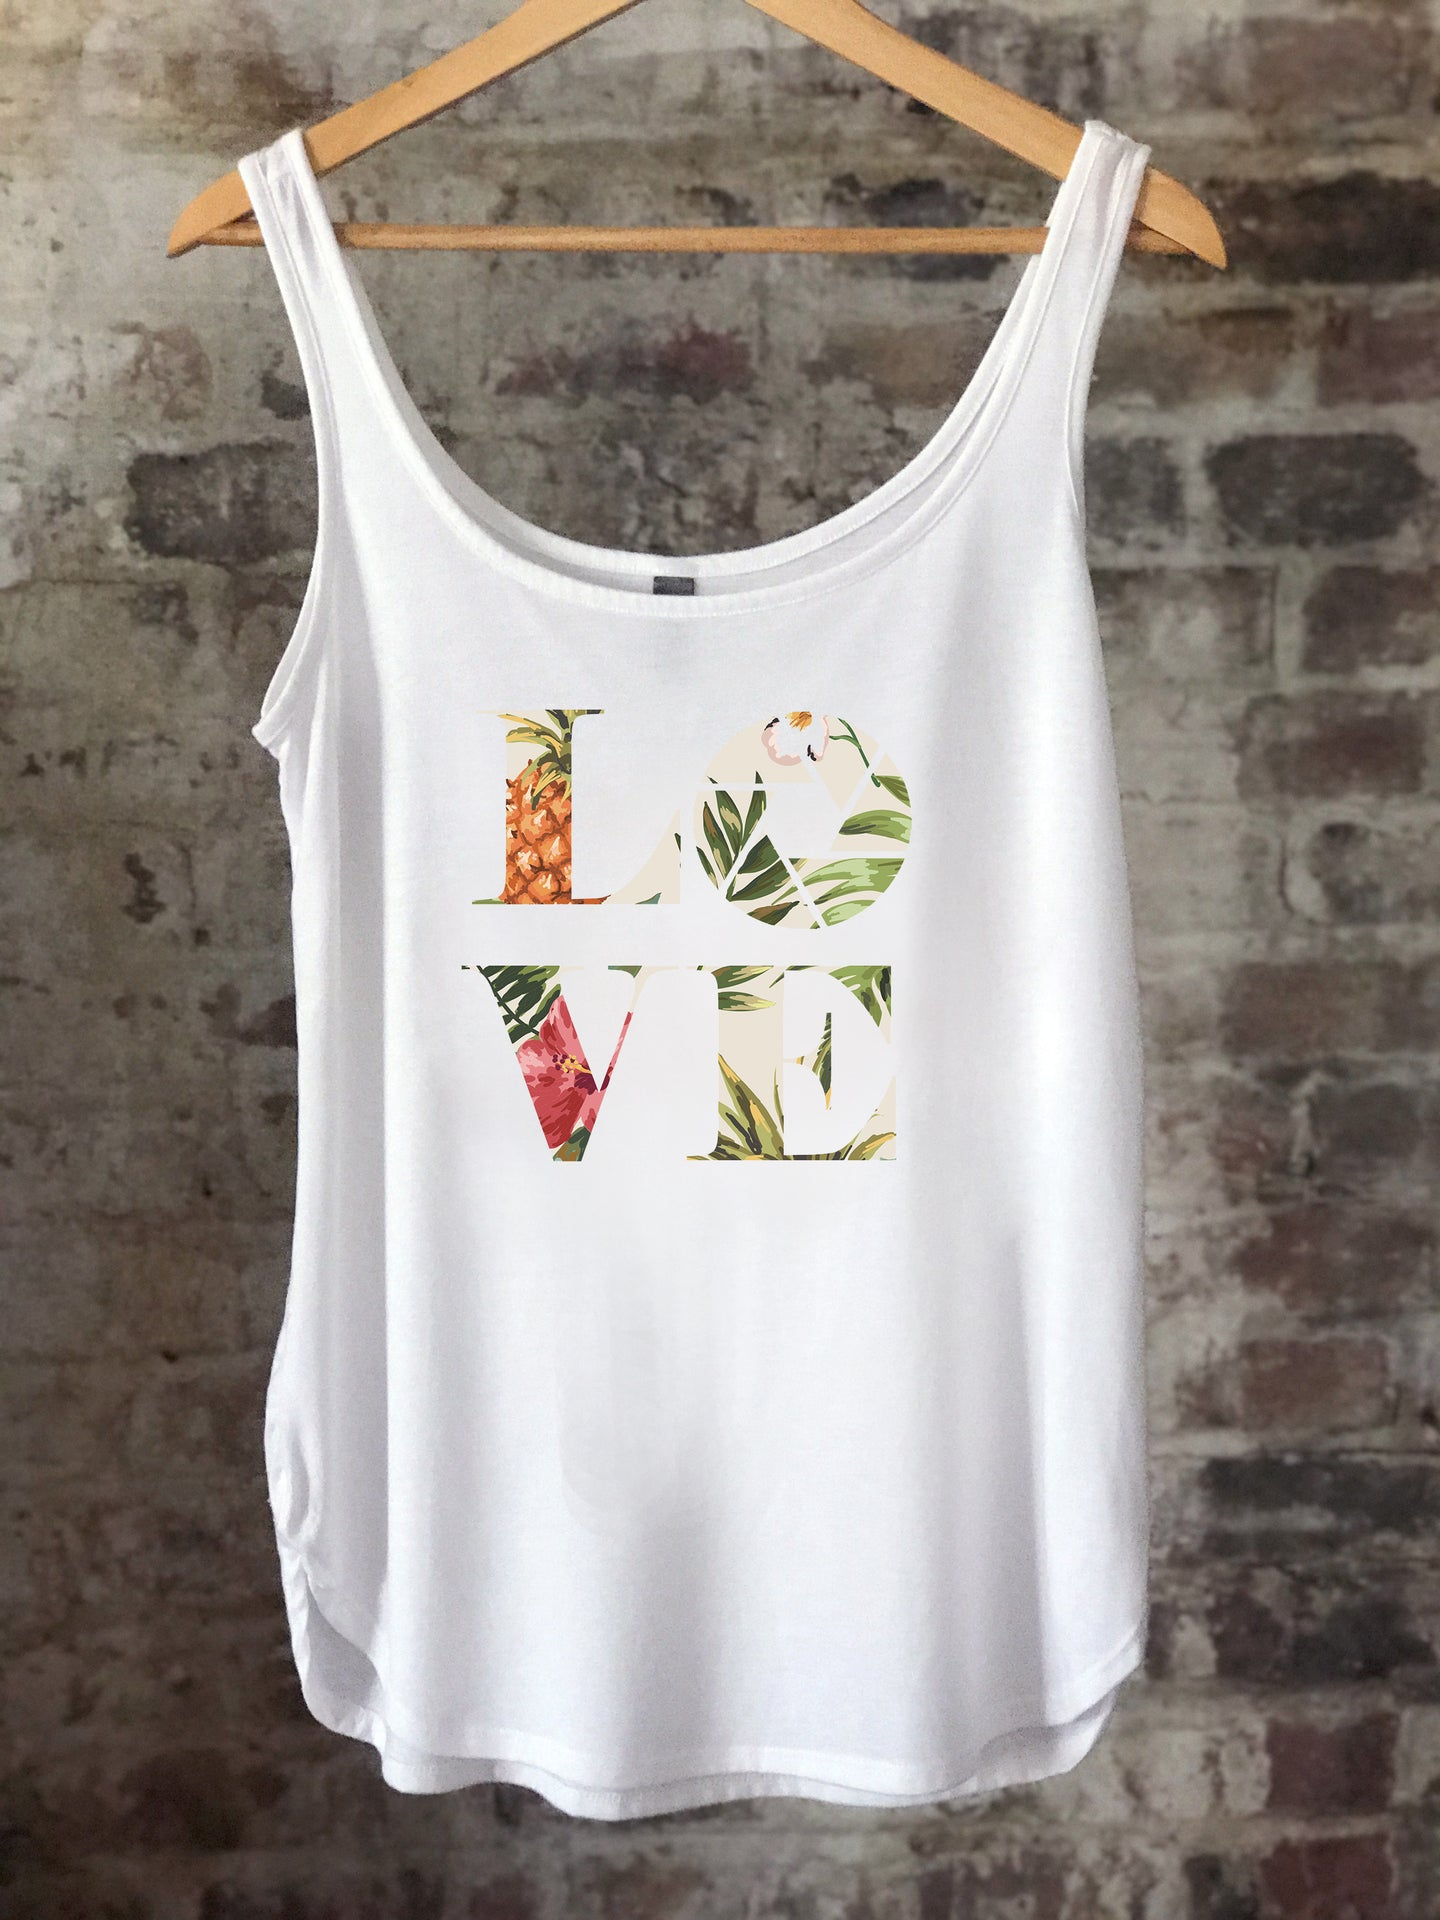 Aperture LOVE - Light Tropical - Women's Tank